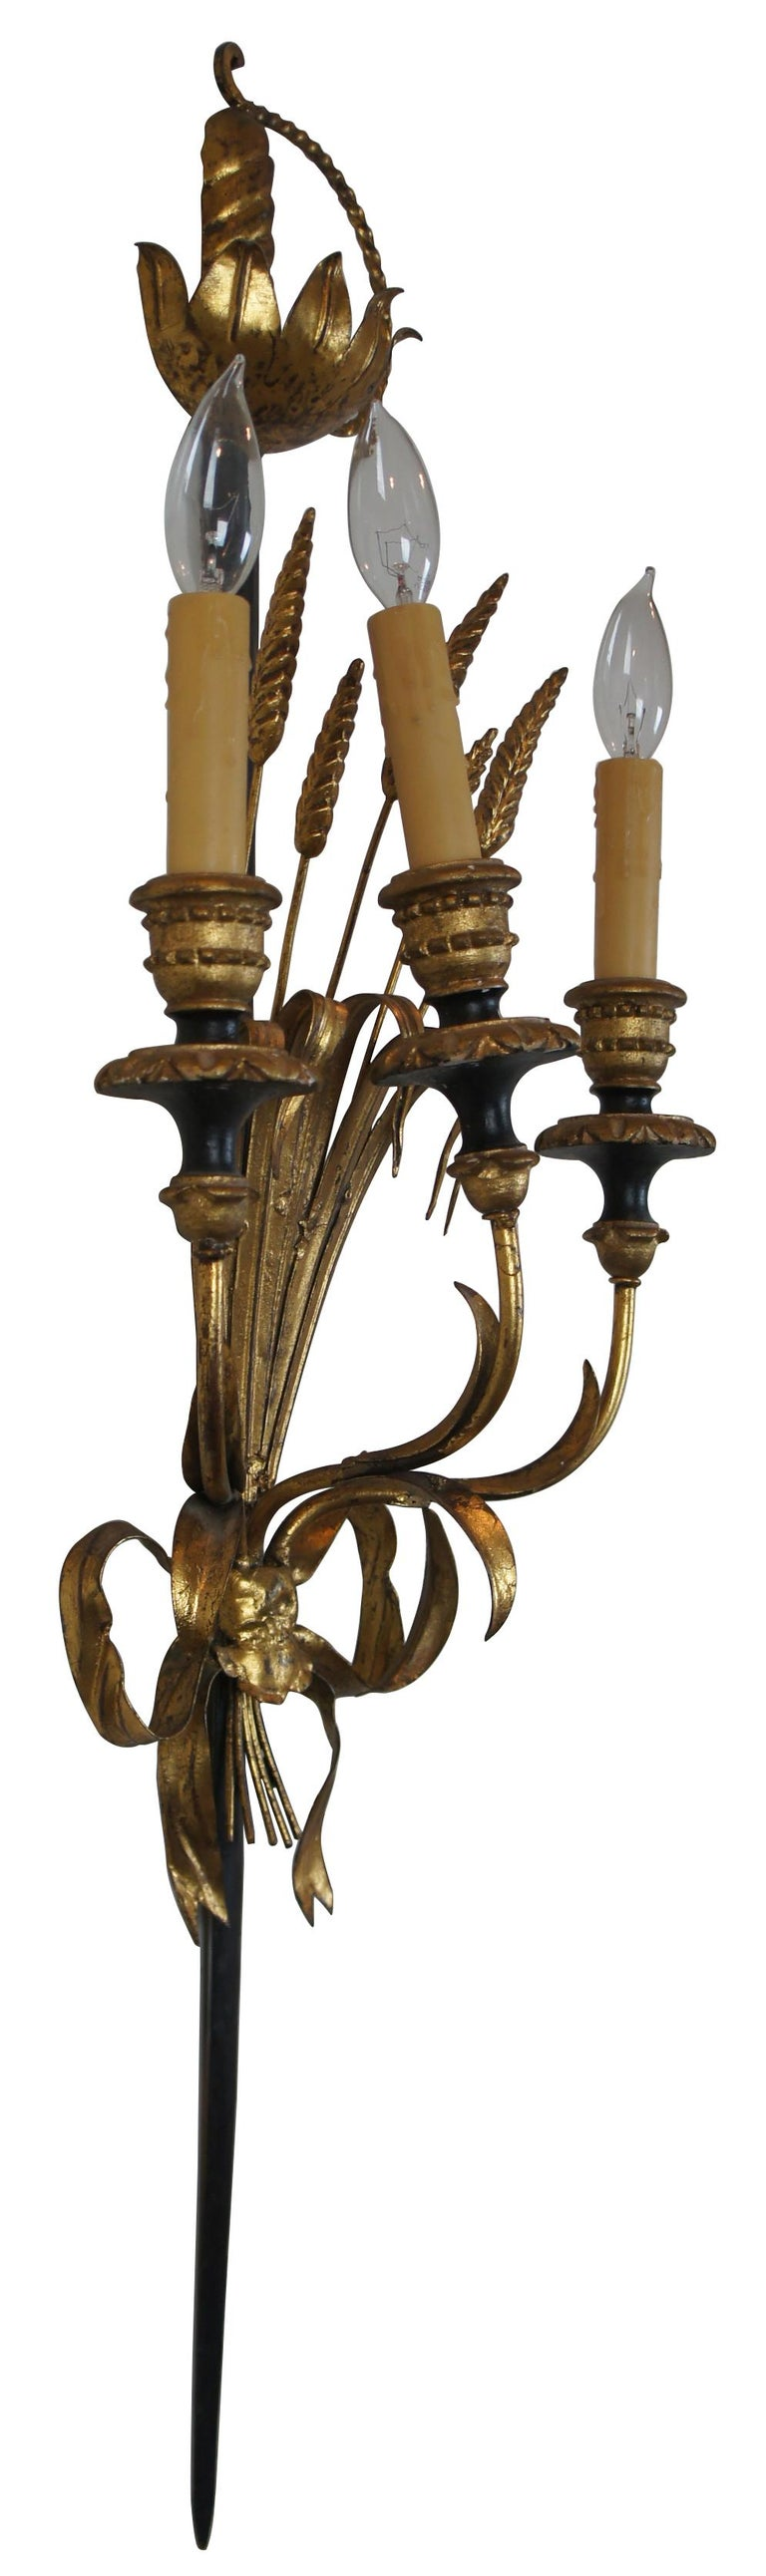 """Vintage Italian toleware Florentine three-light wall sconce shaped like a small sheaf of wheat tied with a bow to a rapier or sword. Measures: 37""""."""